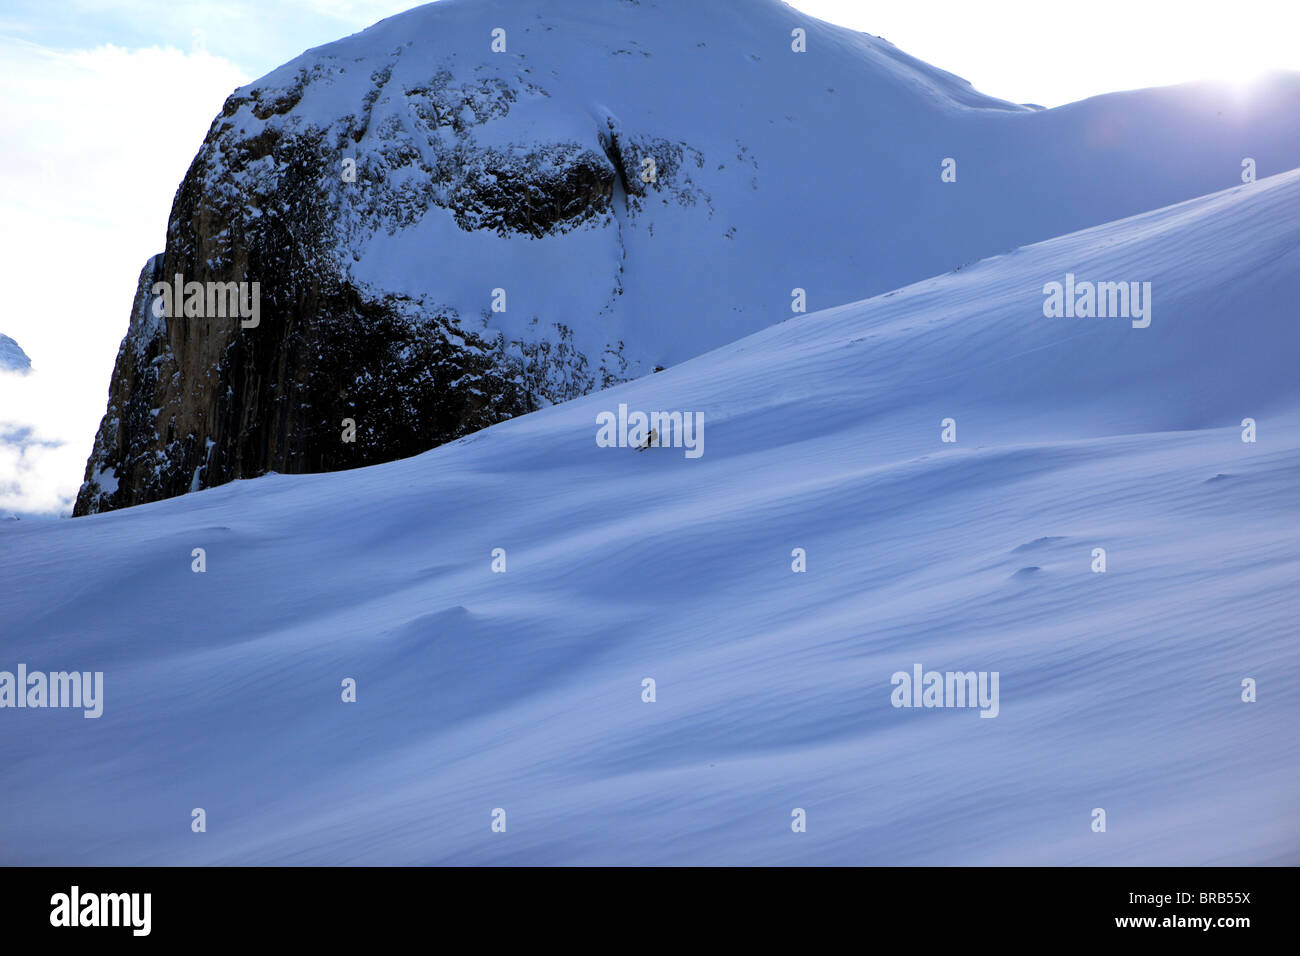 A solo skier enjoys powder snow on a Val Gardena off piste slope - Stock Image